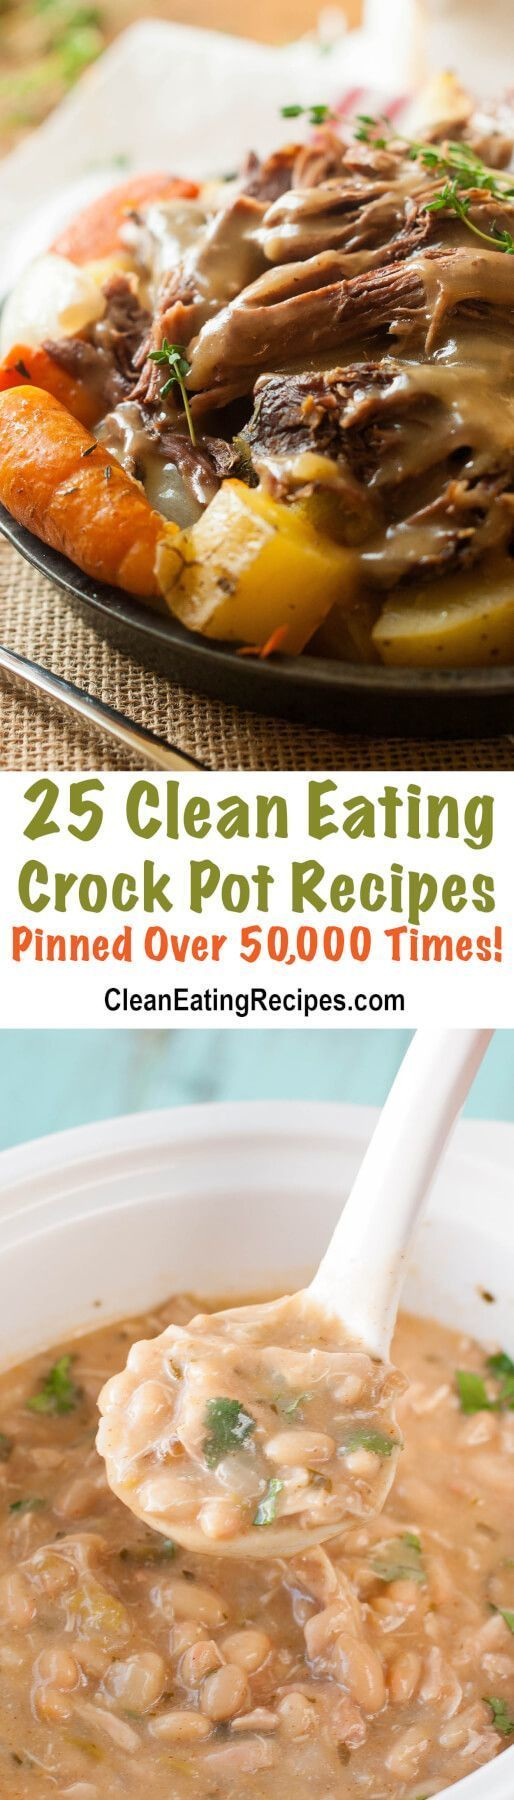 Each of these Clean Eating crock pot recipes has been pinned at least 50,000 times. I want to try them all!